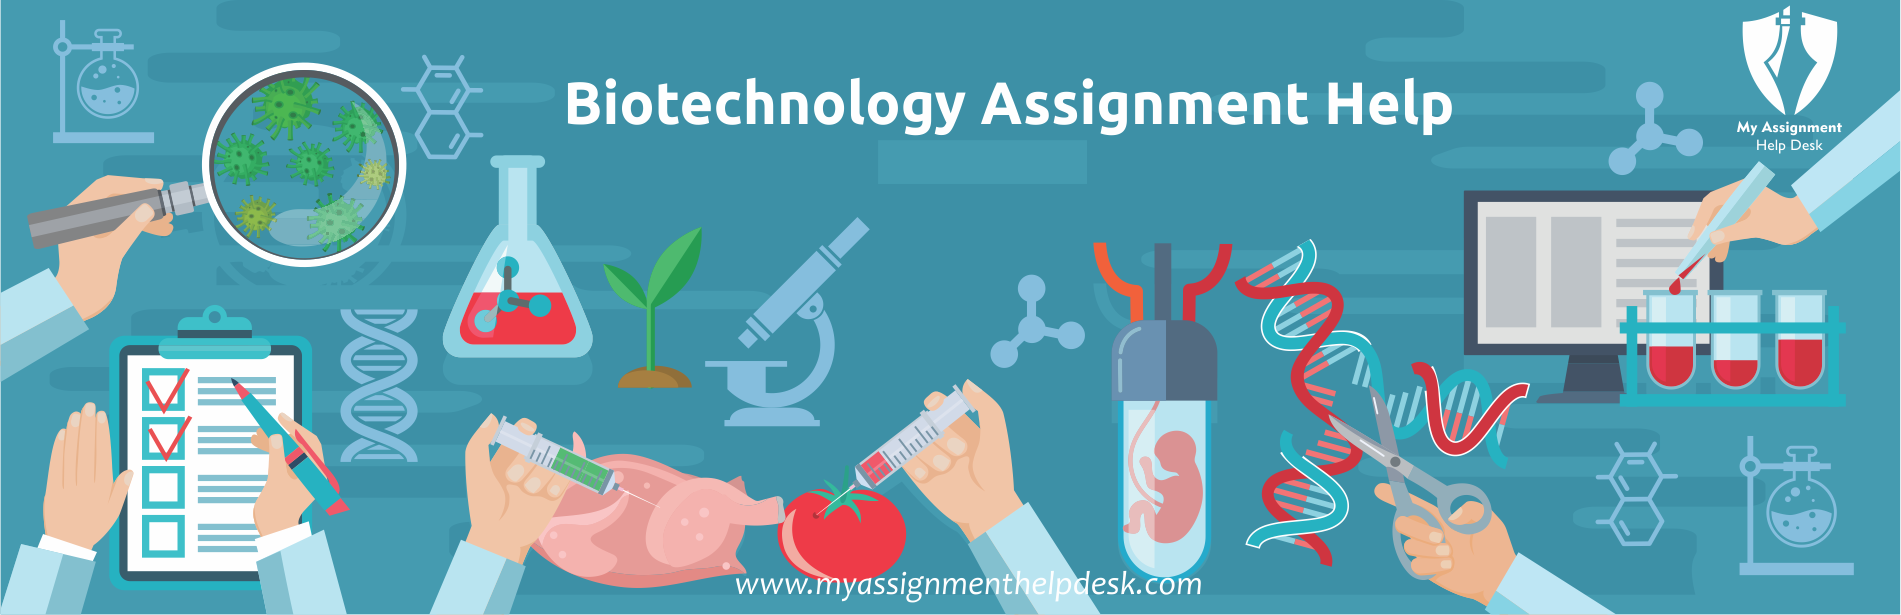 Biotechnology Assignment Help